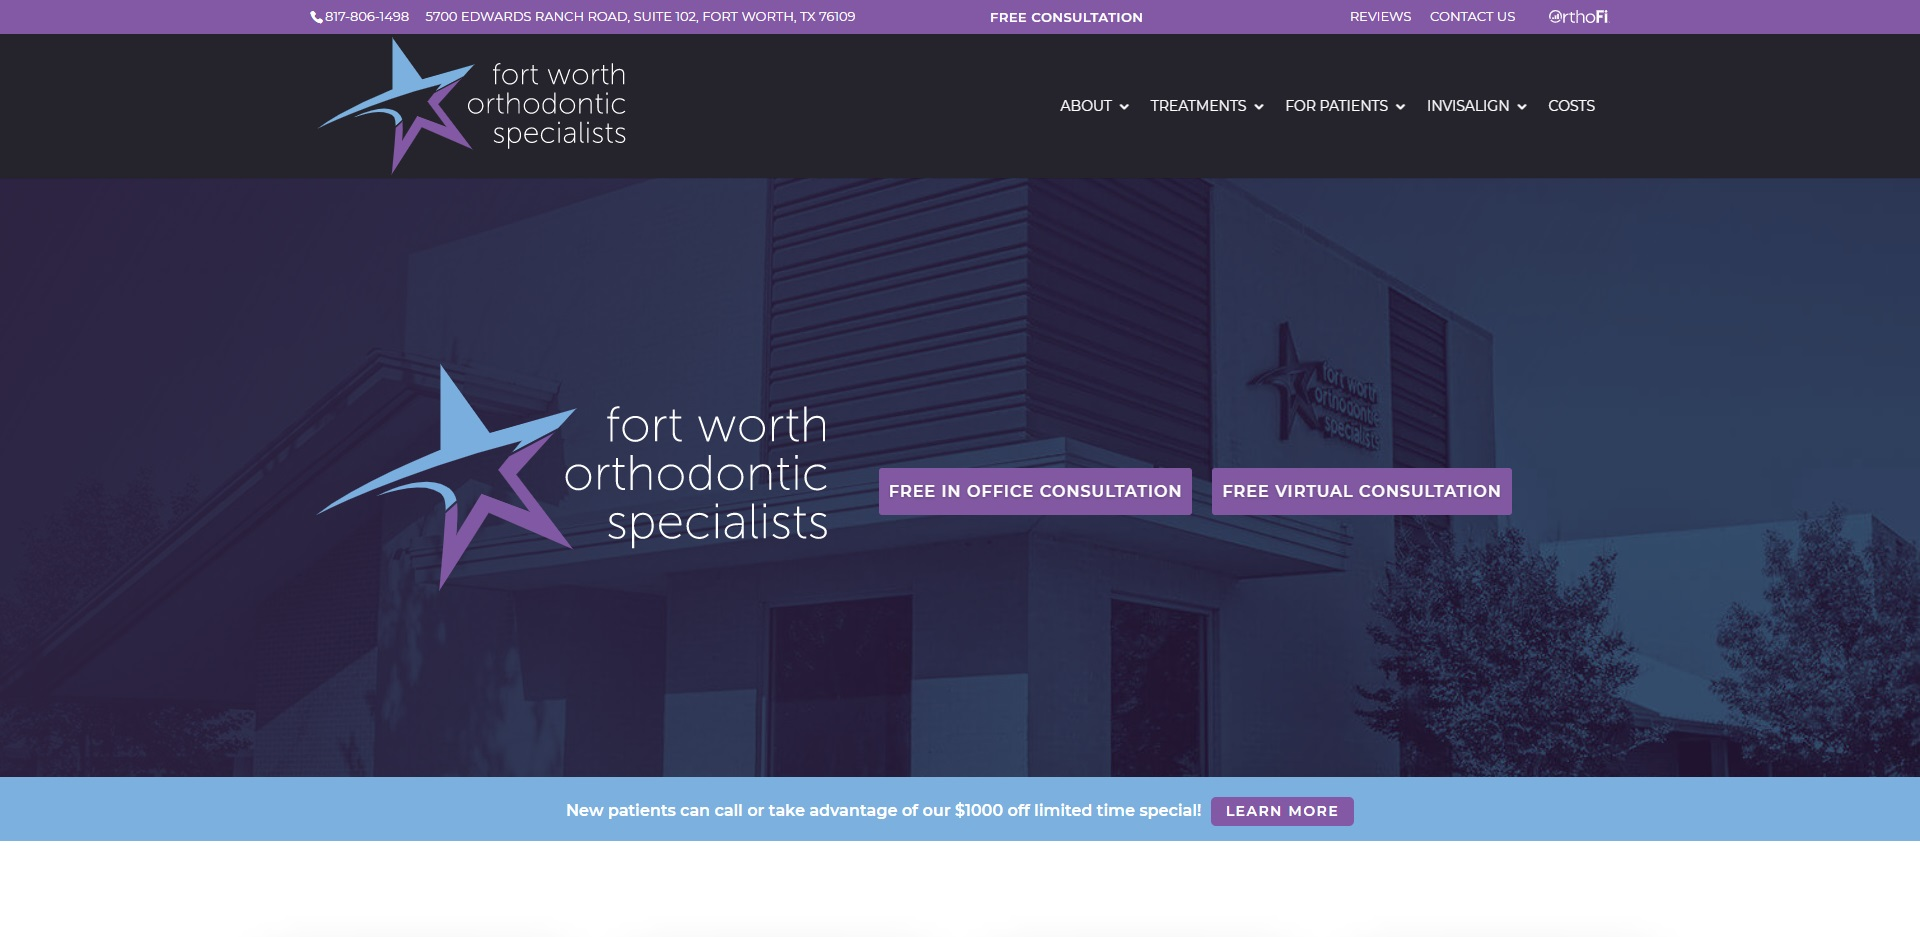 5 Best Orthodontists in Fort Worth